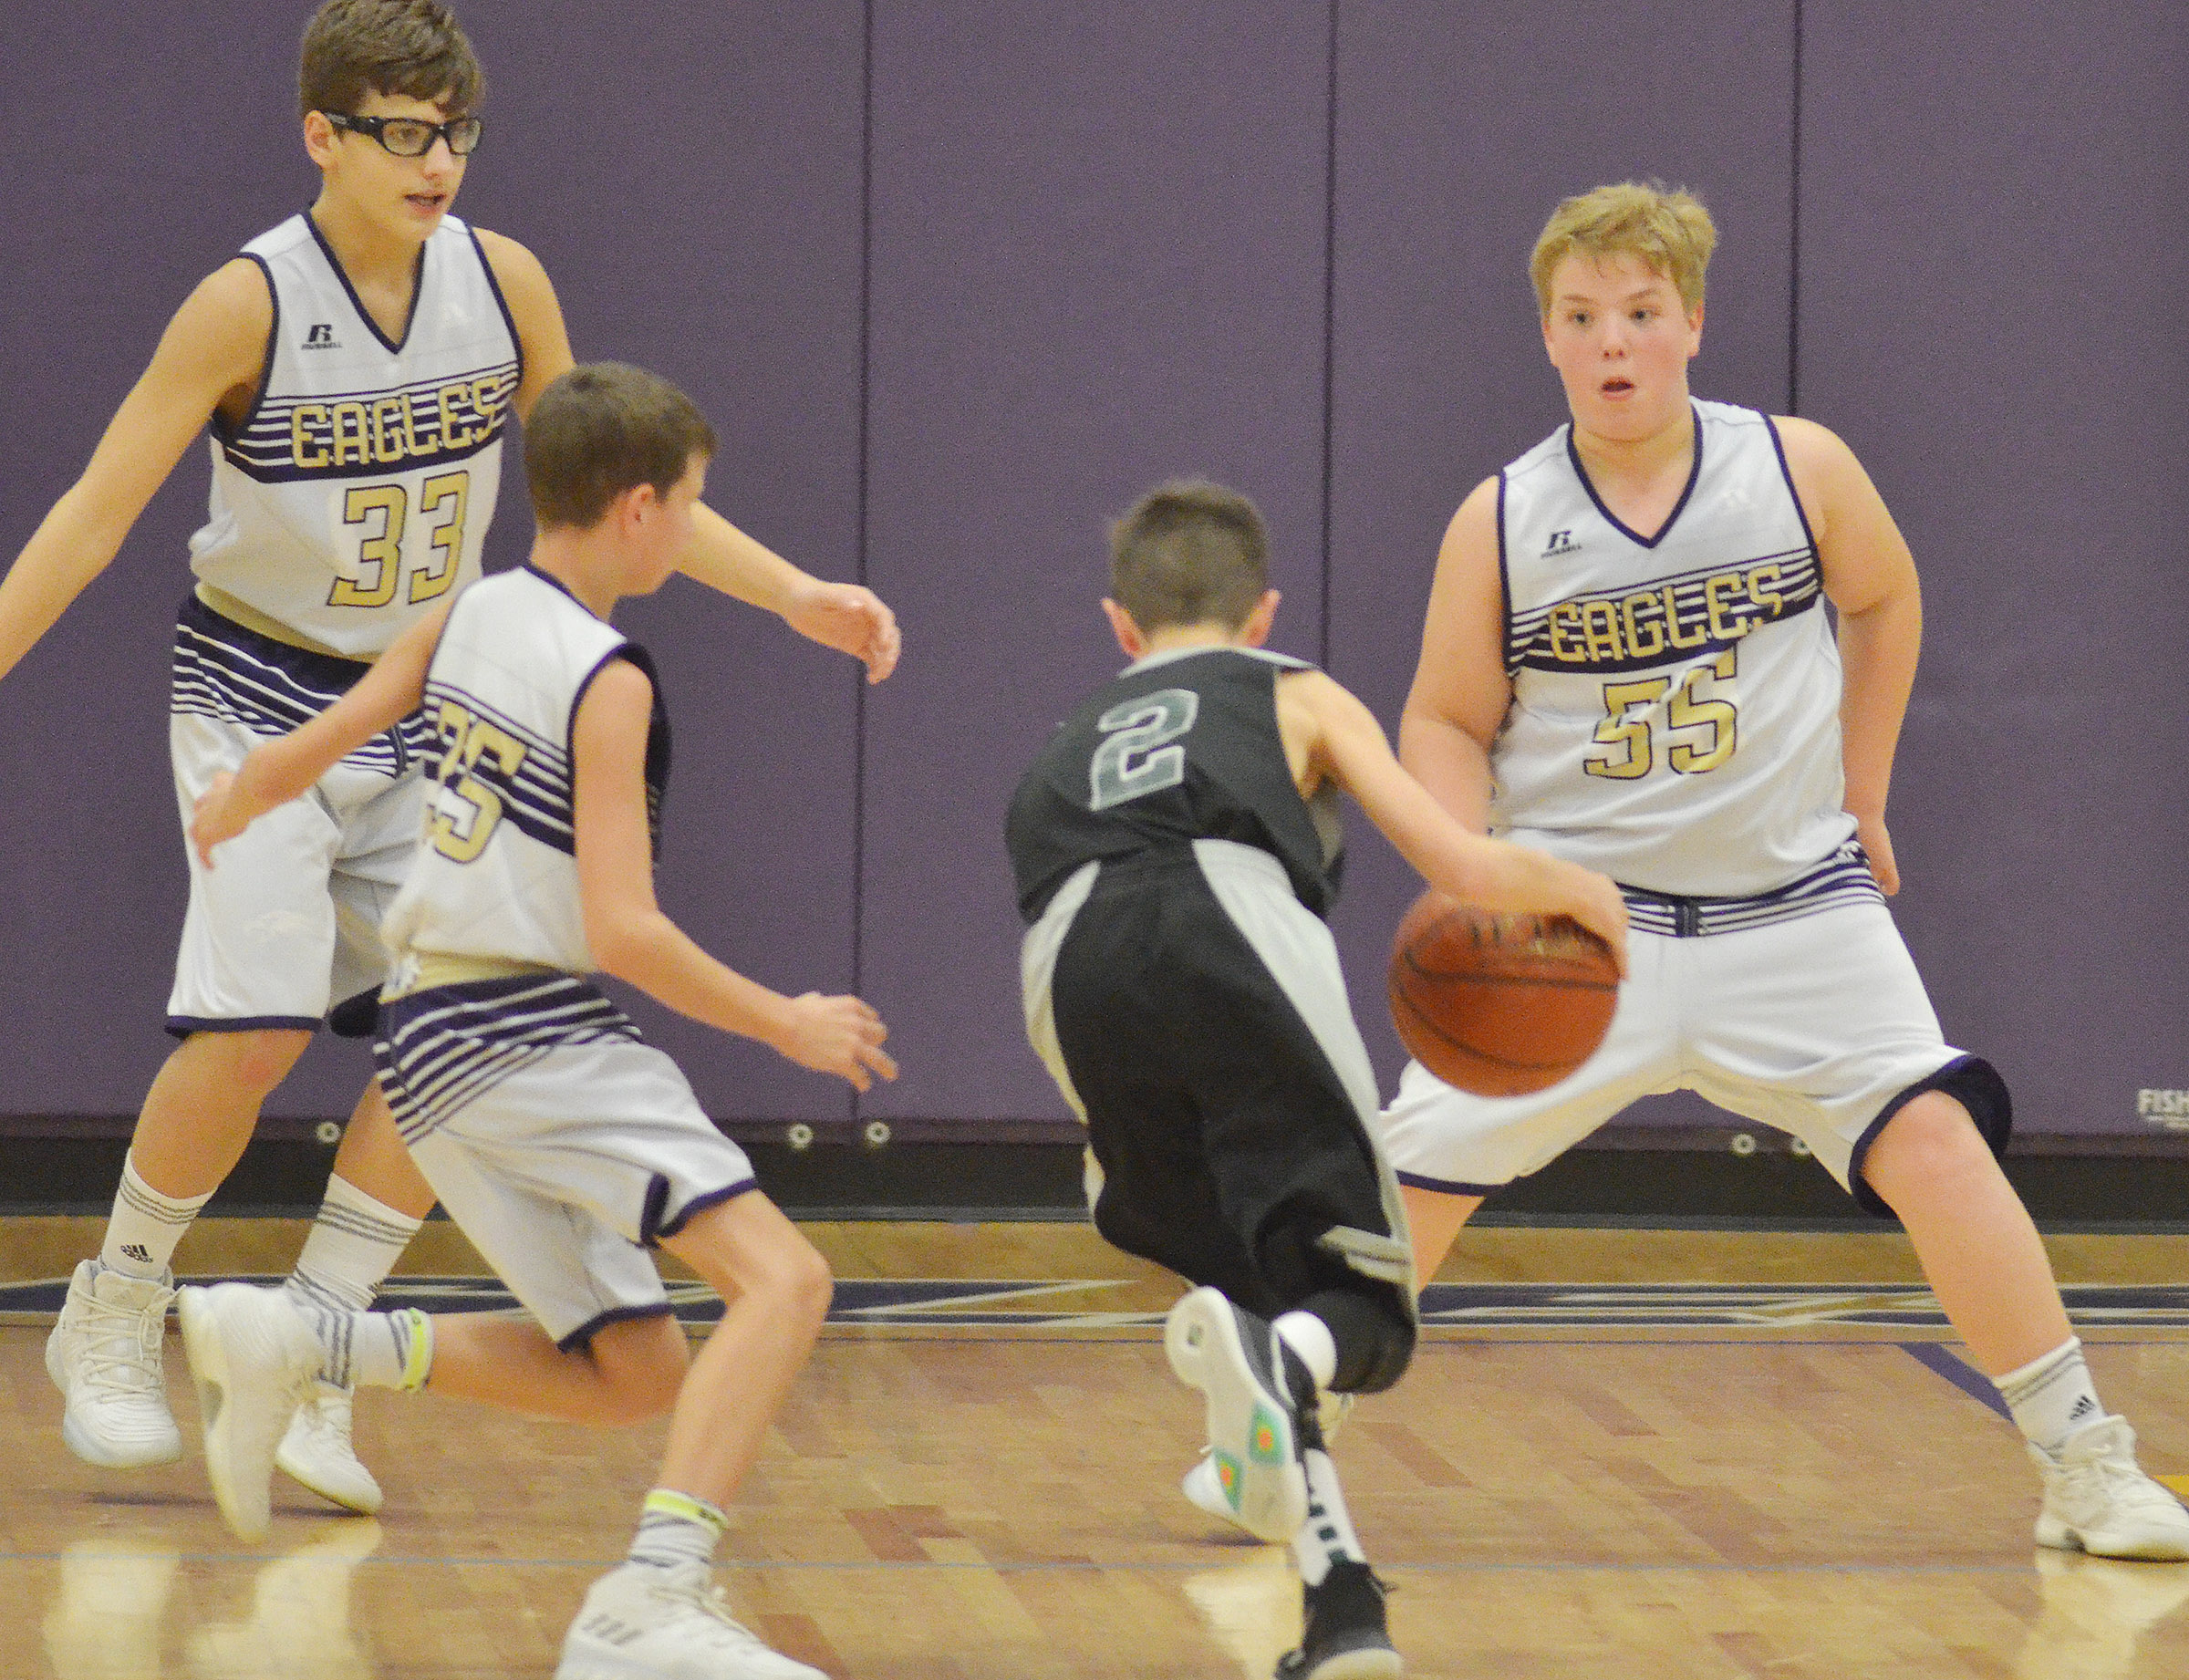 From left, Campbellsville Elementary School fifth-graders Dalton Morris and Rowan Petett and CMS sixth-grader Ryan Grubbs play defense.